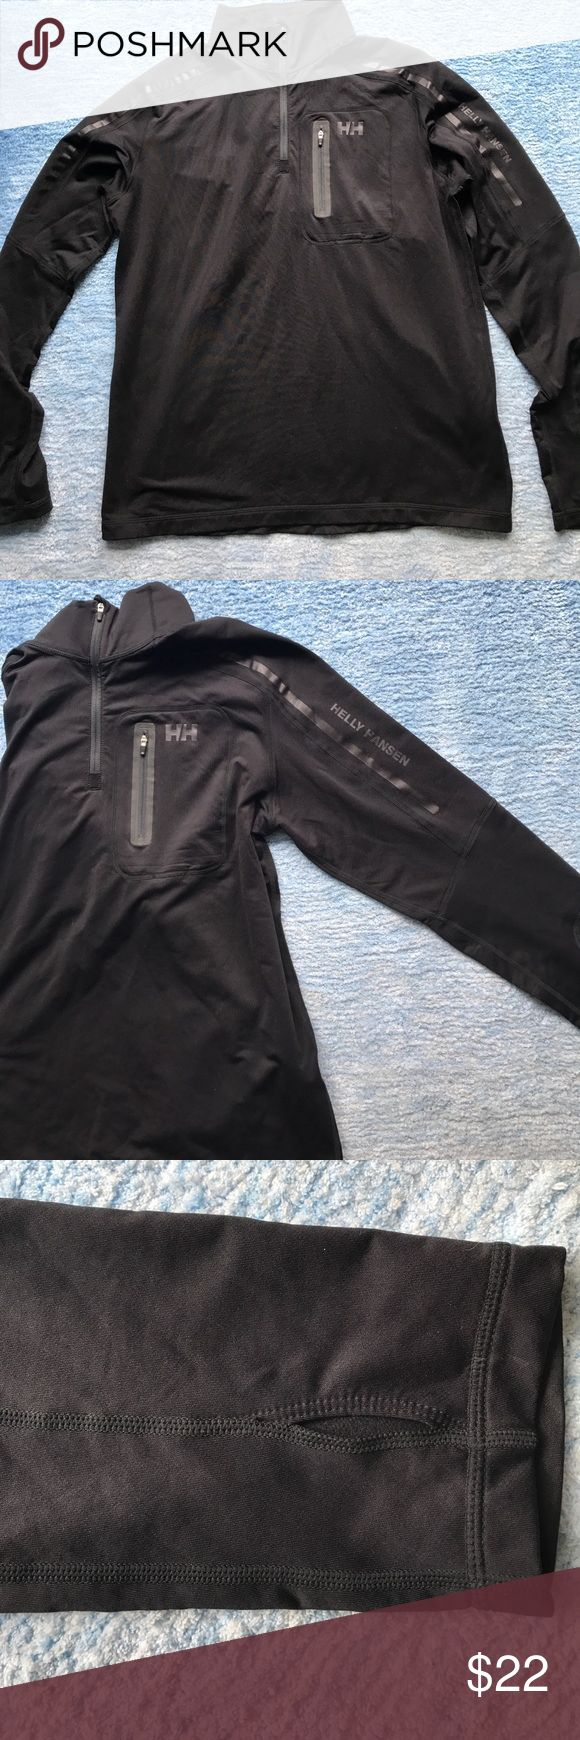 Men's Helly Hansen Quarter Zip Men's Helly Hansen Quarter Zip. Perfect for outdoors sports and colder days/nights! Has small pocket with zipper on chest and thumb holes on sleeves. Helly Hansen Jackets & Coats Ski & Snowboard